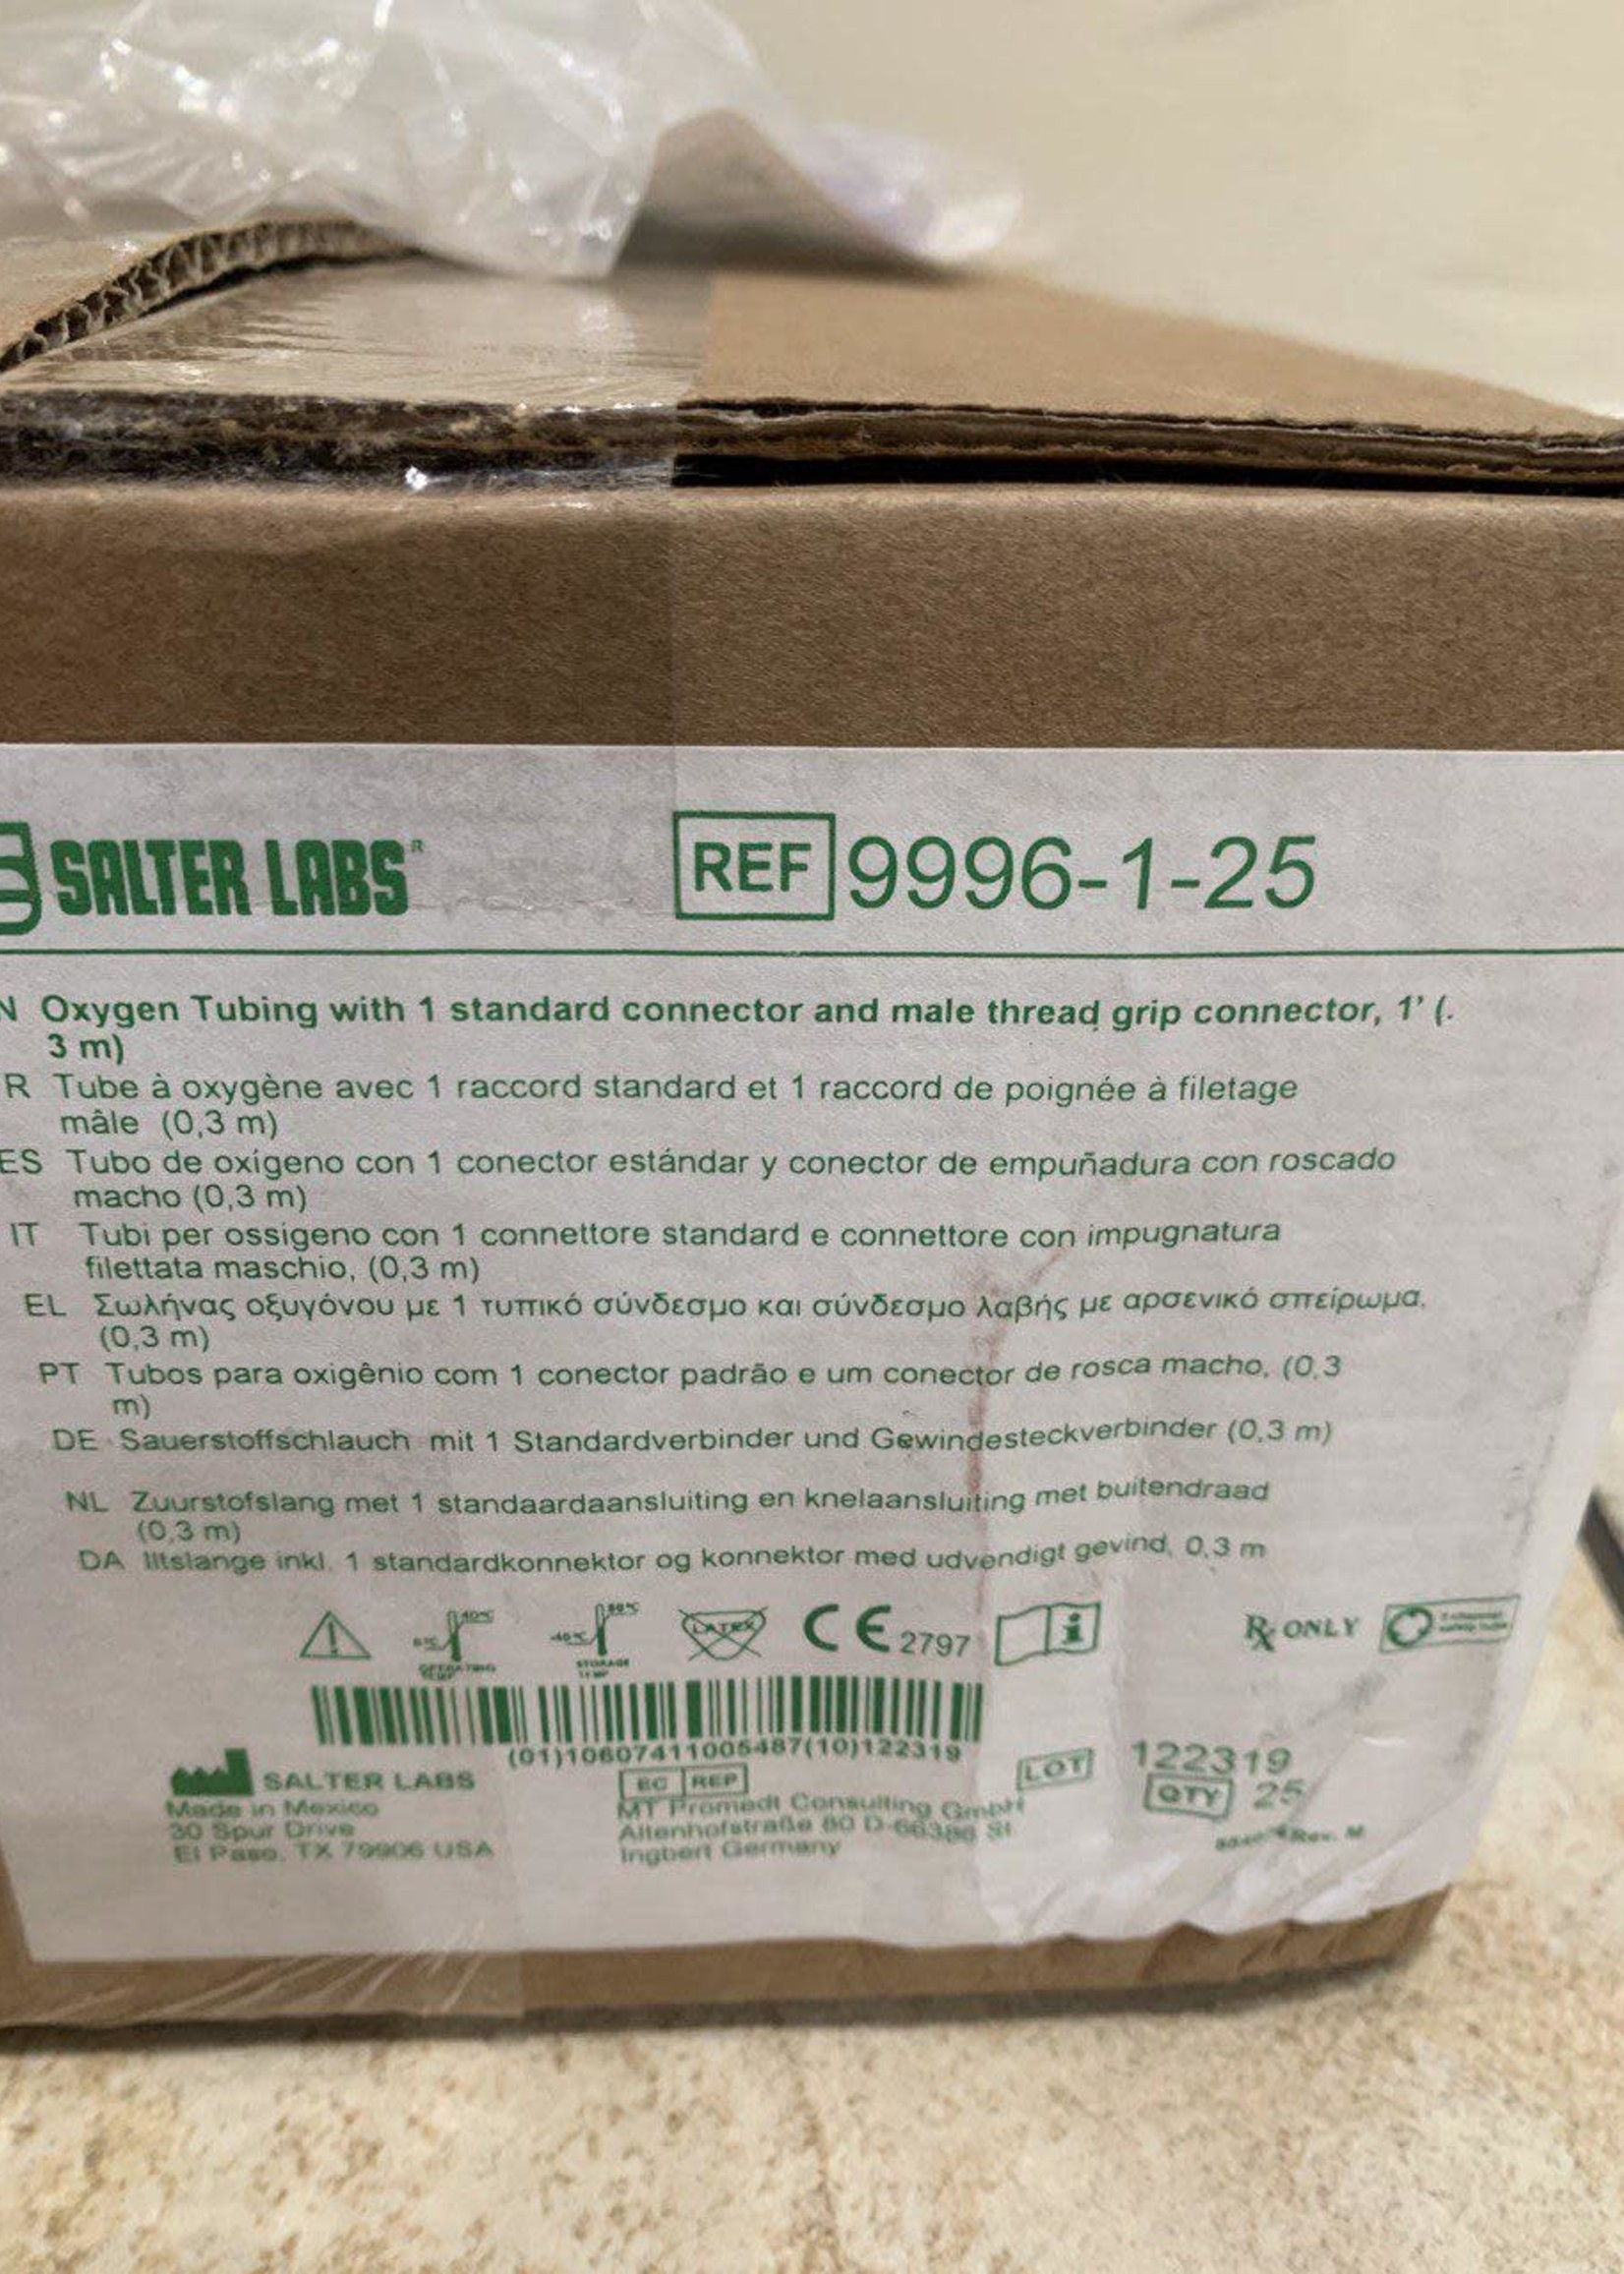 A Box of Oxygen Tubing With Connectors